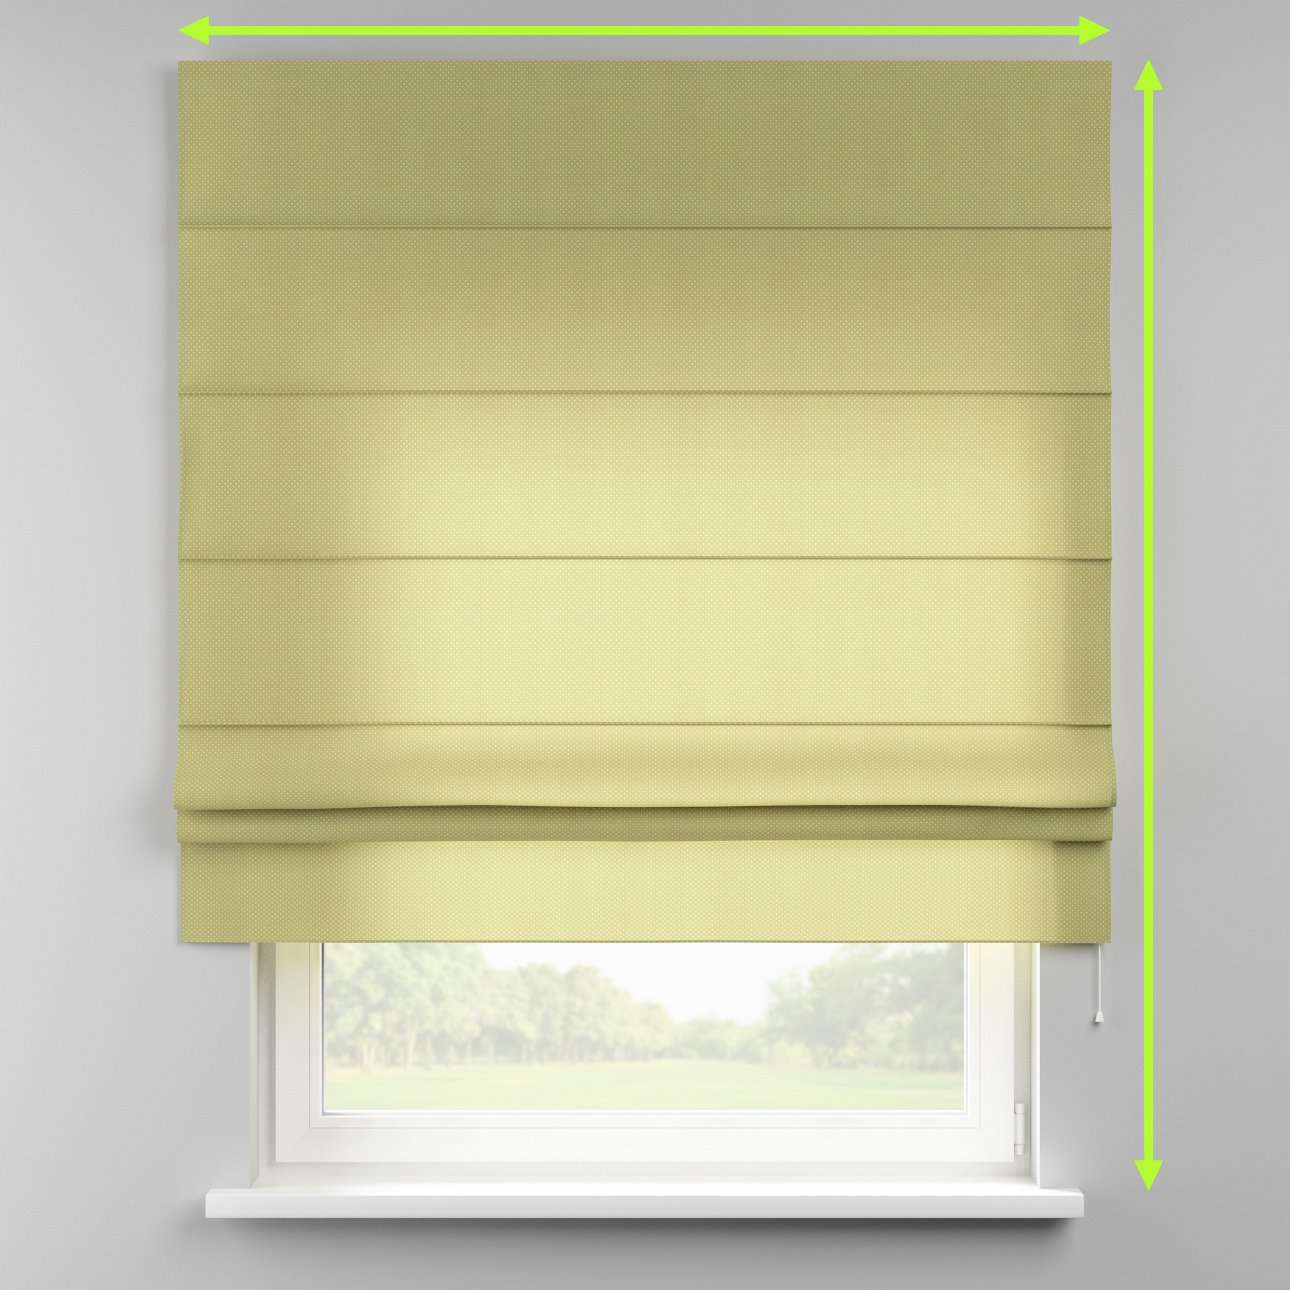 Padva roman blind  in collection Ashley, fabric: 137-51